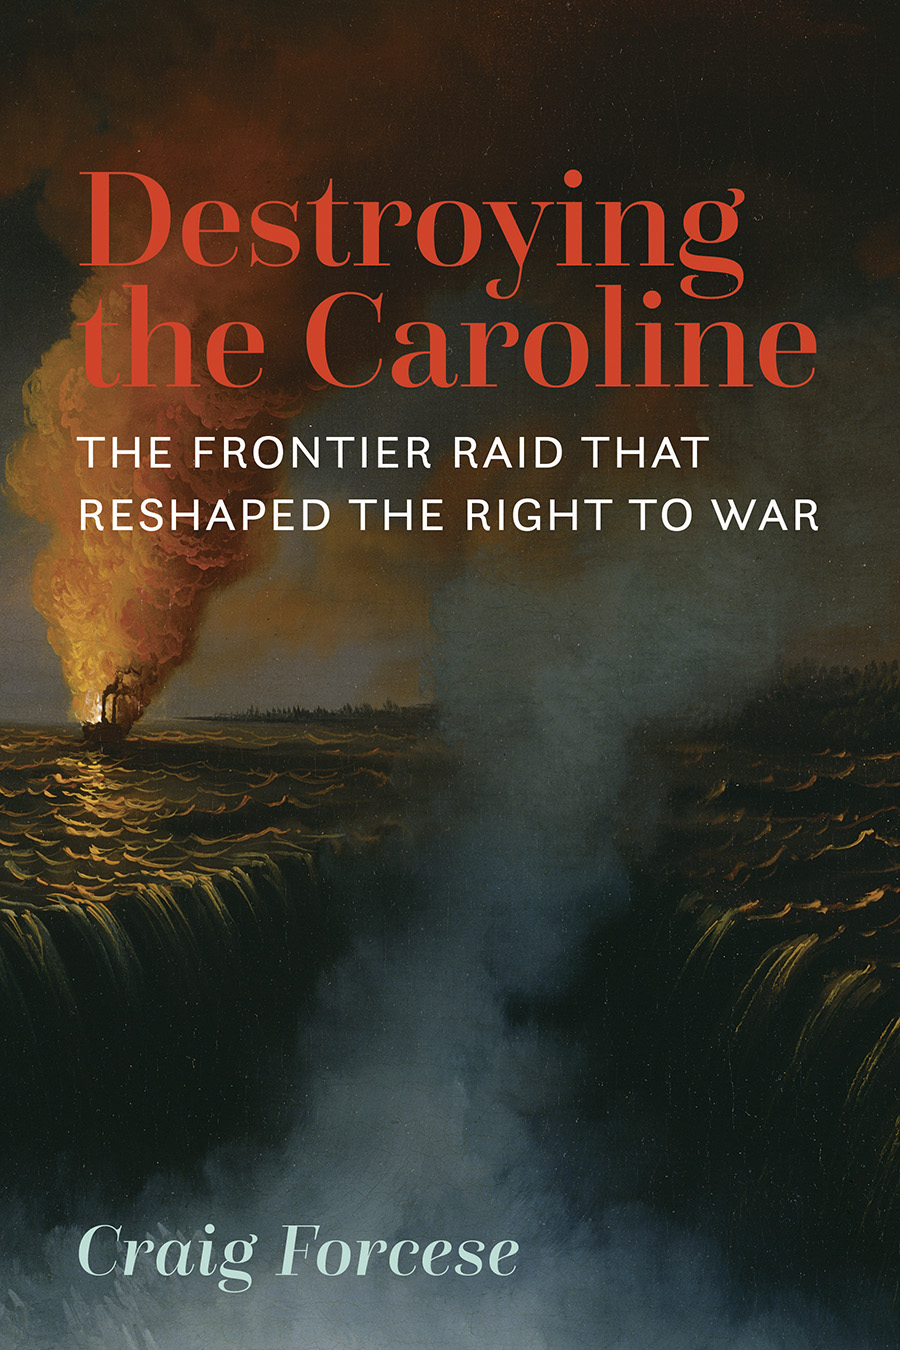 Book cover for Destroying the Caroline by Craig Forcese, Book cover. The image shows the steamship Caroline burning and emitting a huge cloud of red and orange smoke. The Caroline is still floating on the Niagara River approaching the Horseshoe Falls.